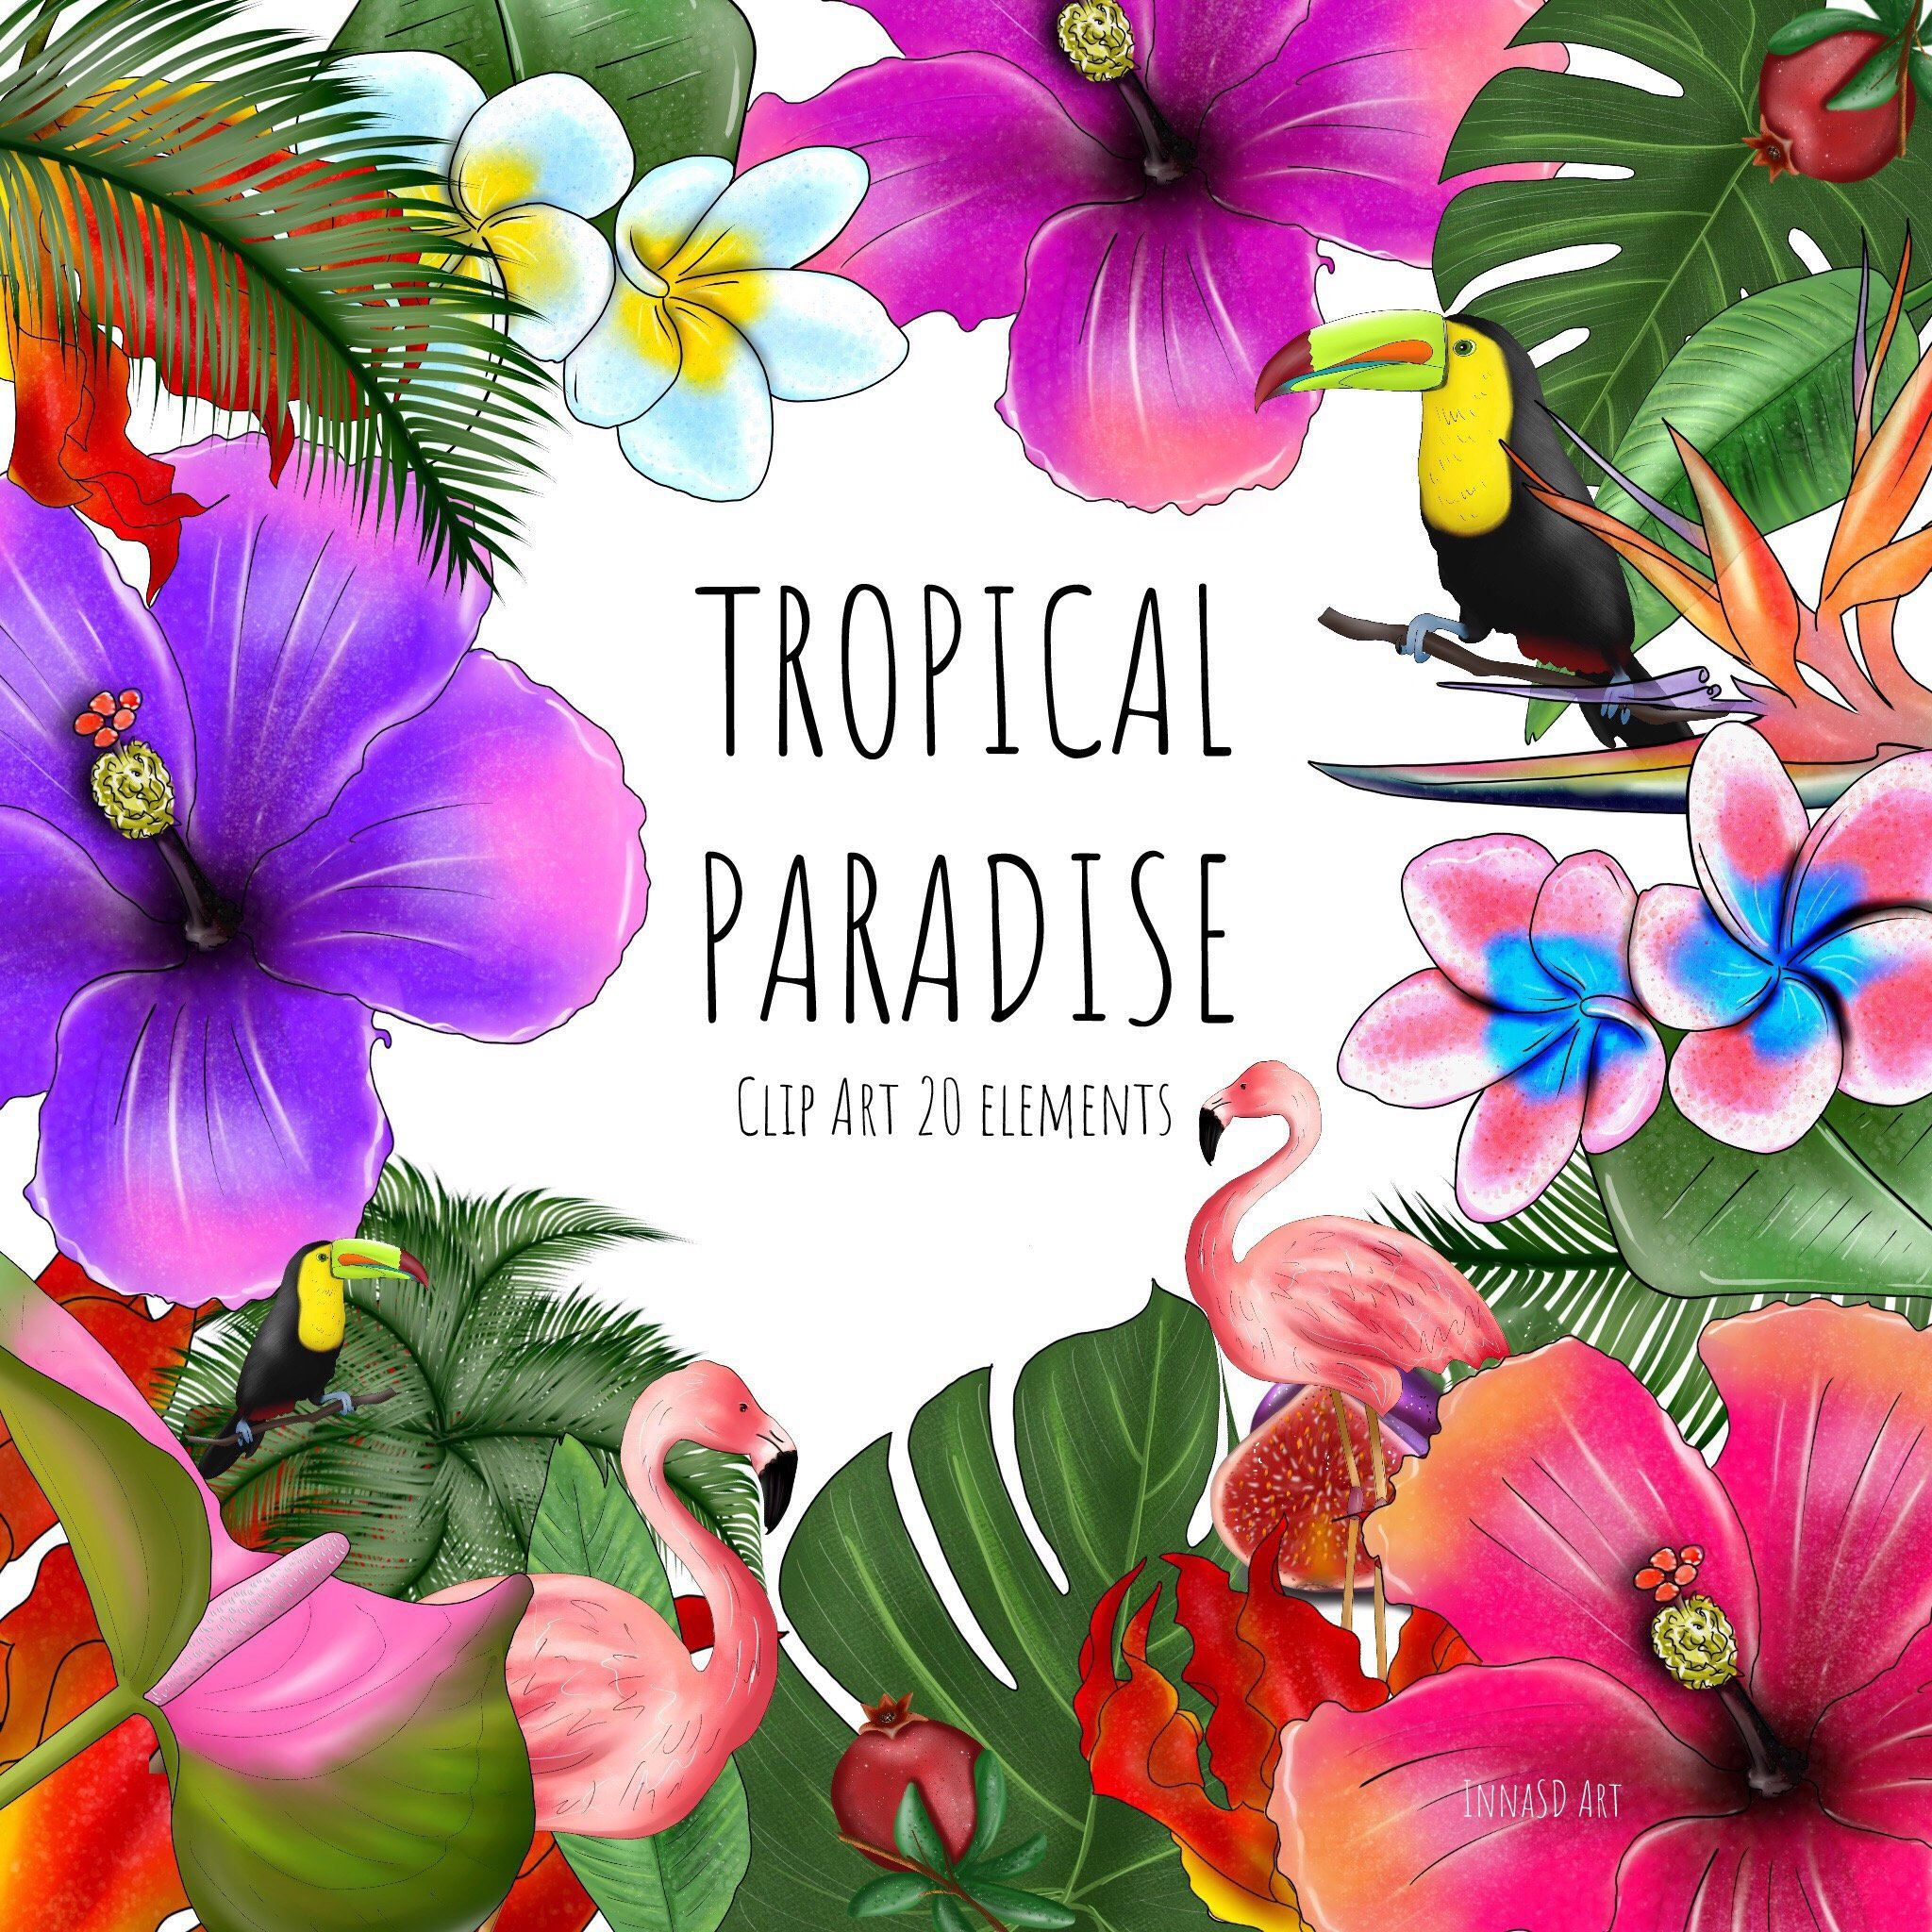 digital floral clipart tropical clipart paradise beach clipart hawaii clipart flamingo clipart tropical flowers clipart jungle clipart by innasdart on  [ 2048 x 2048 Pixel ]